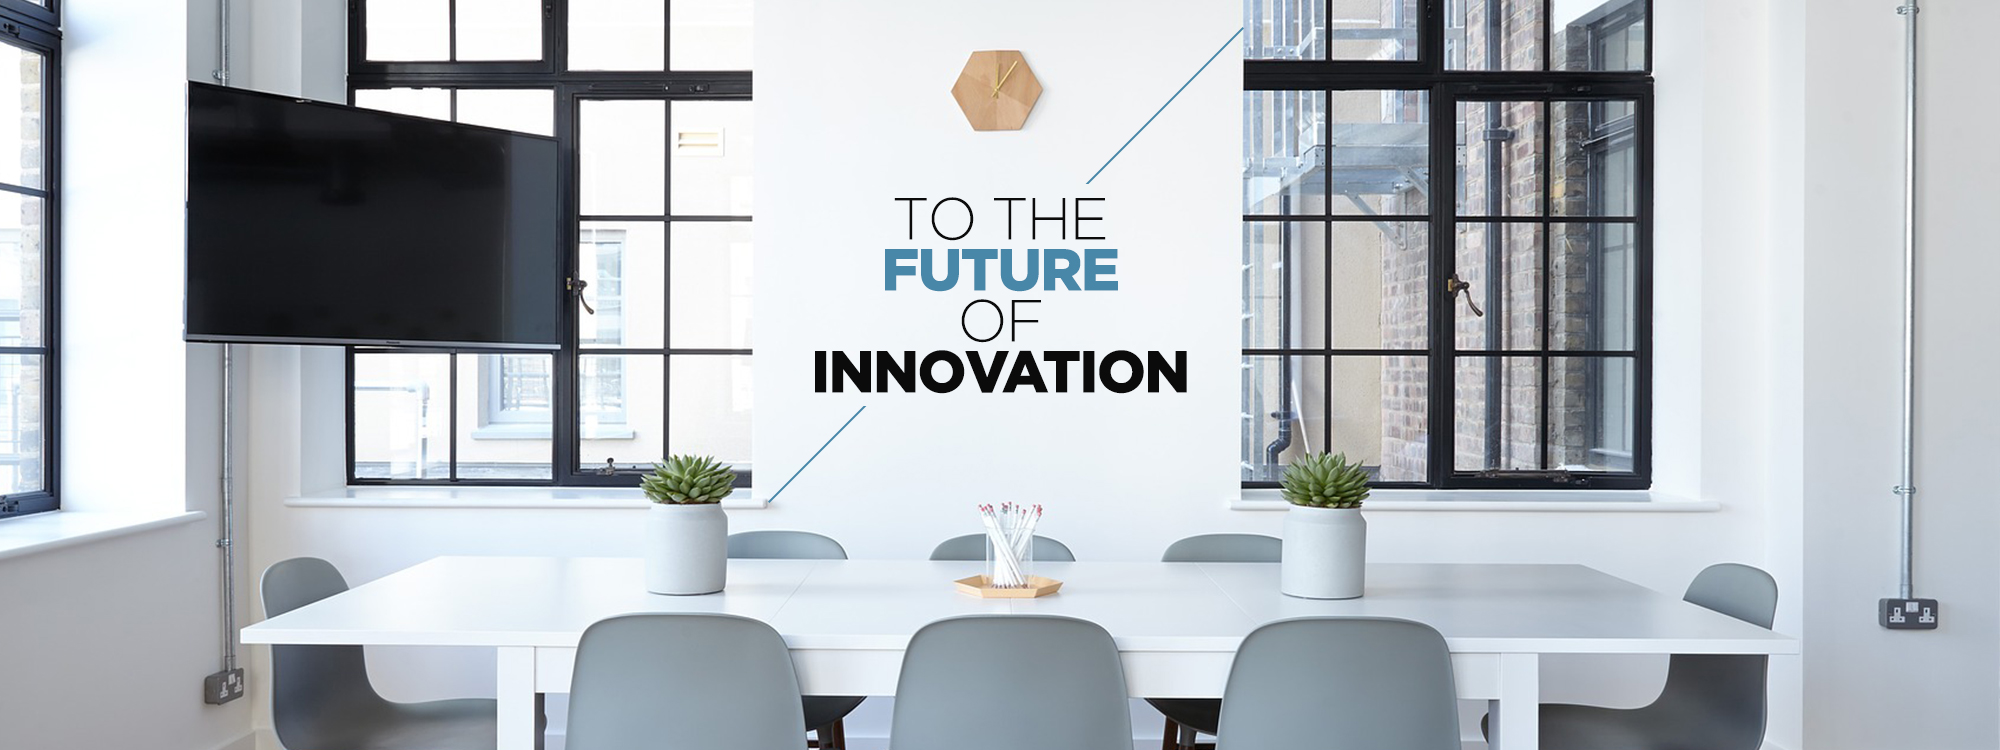 TO THE FUTURE OF INNOVATION